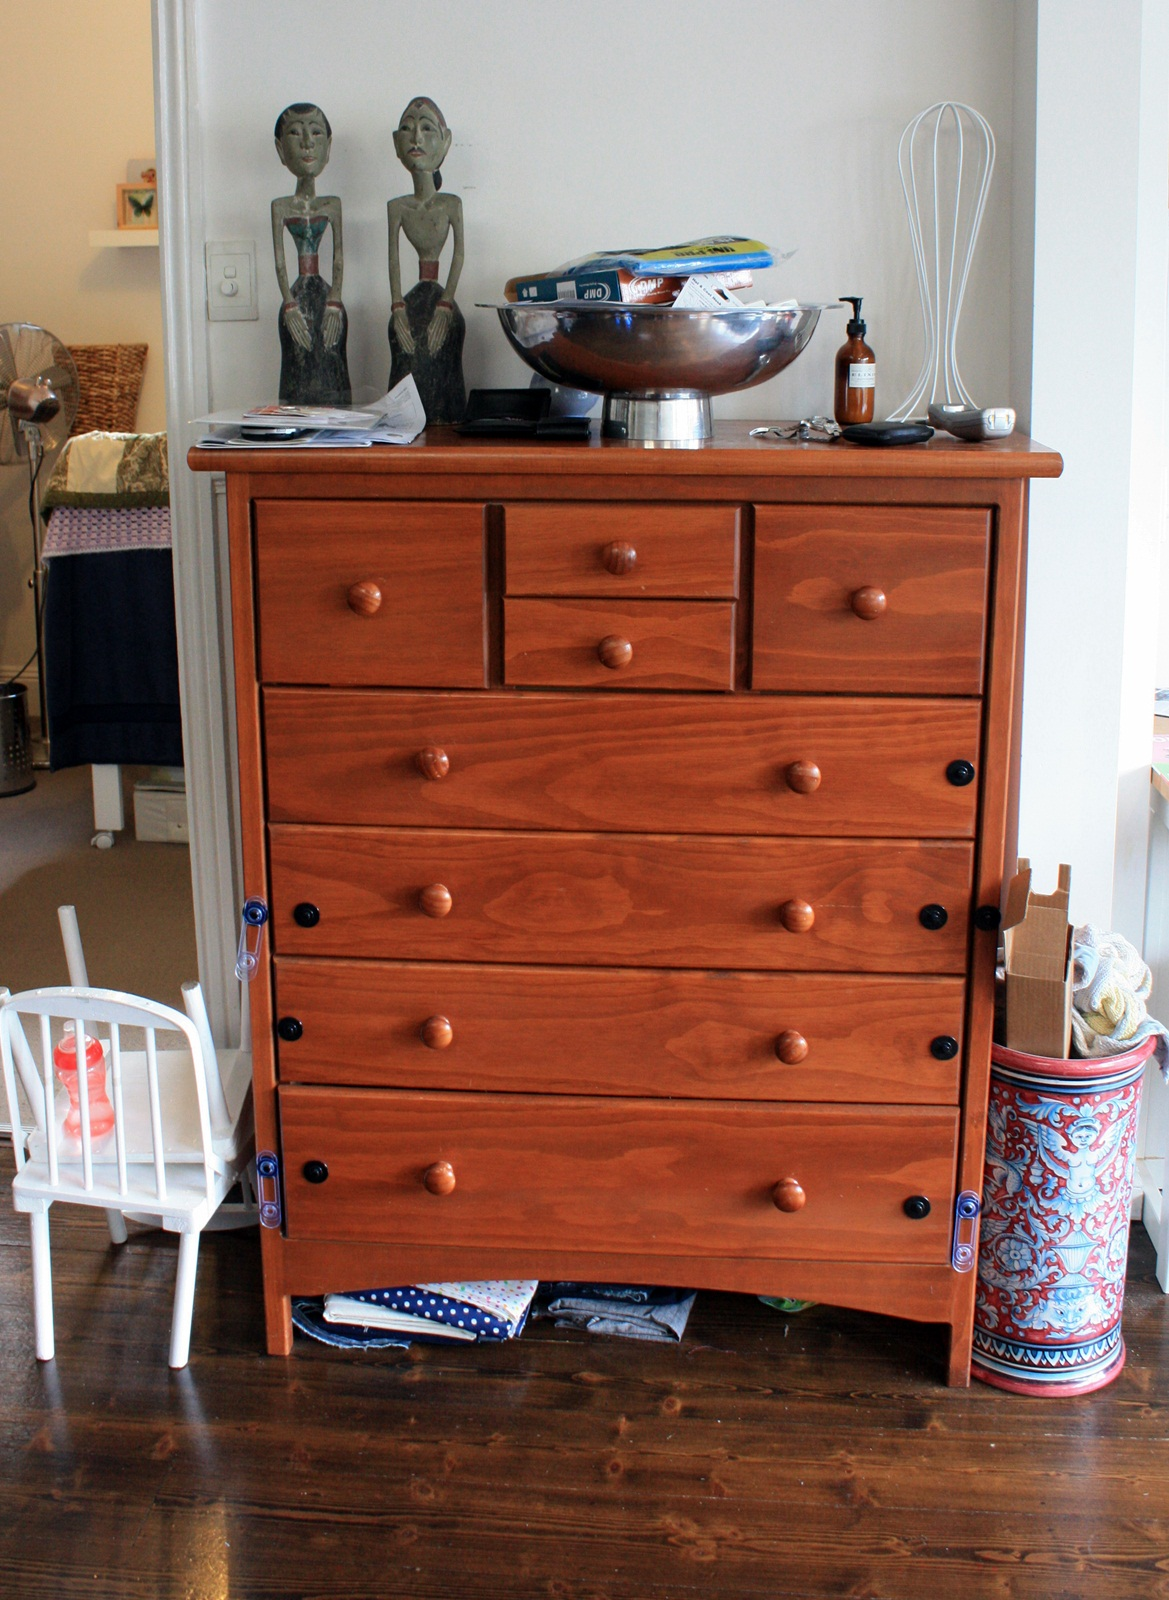 Living Room Chest Of Drawers : before and after